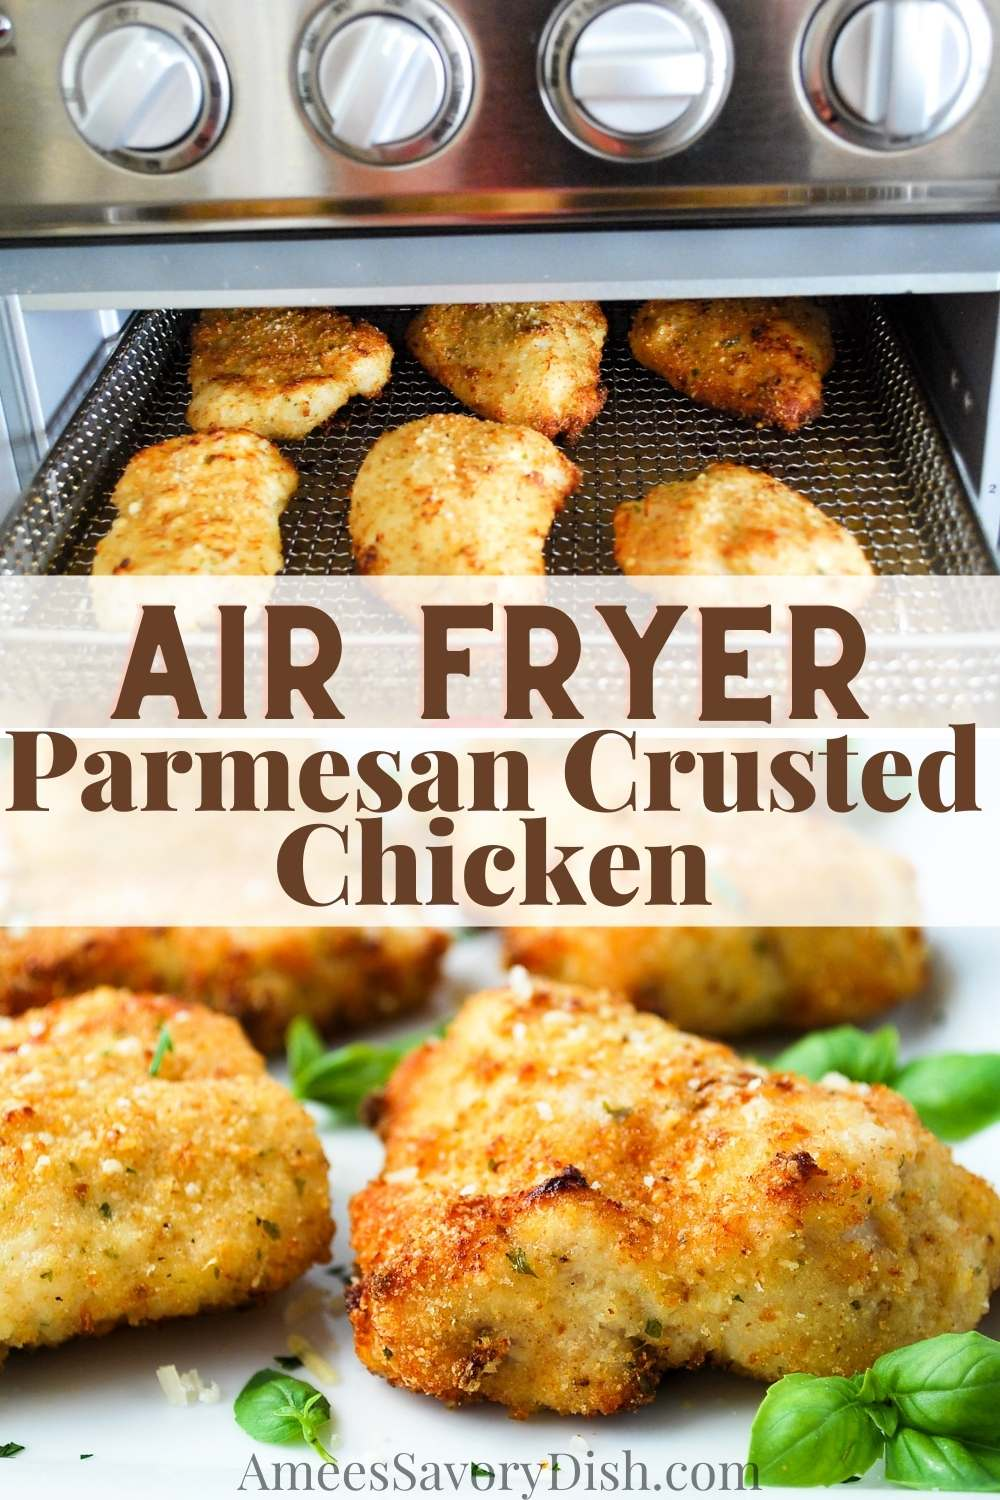 Air Fryer Parmesan Crusted Chicken is an easy recipe for tender, juicy chicken breasts coated in a crisp layer of breadcrumbs and parmesan that can be made in 20 minutes or less! via @Ameessavorydish